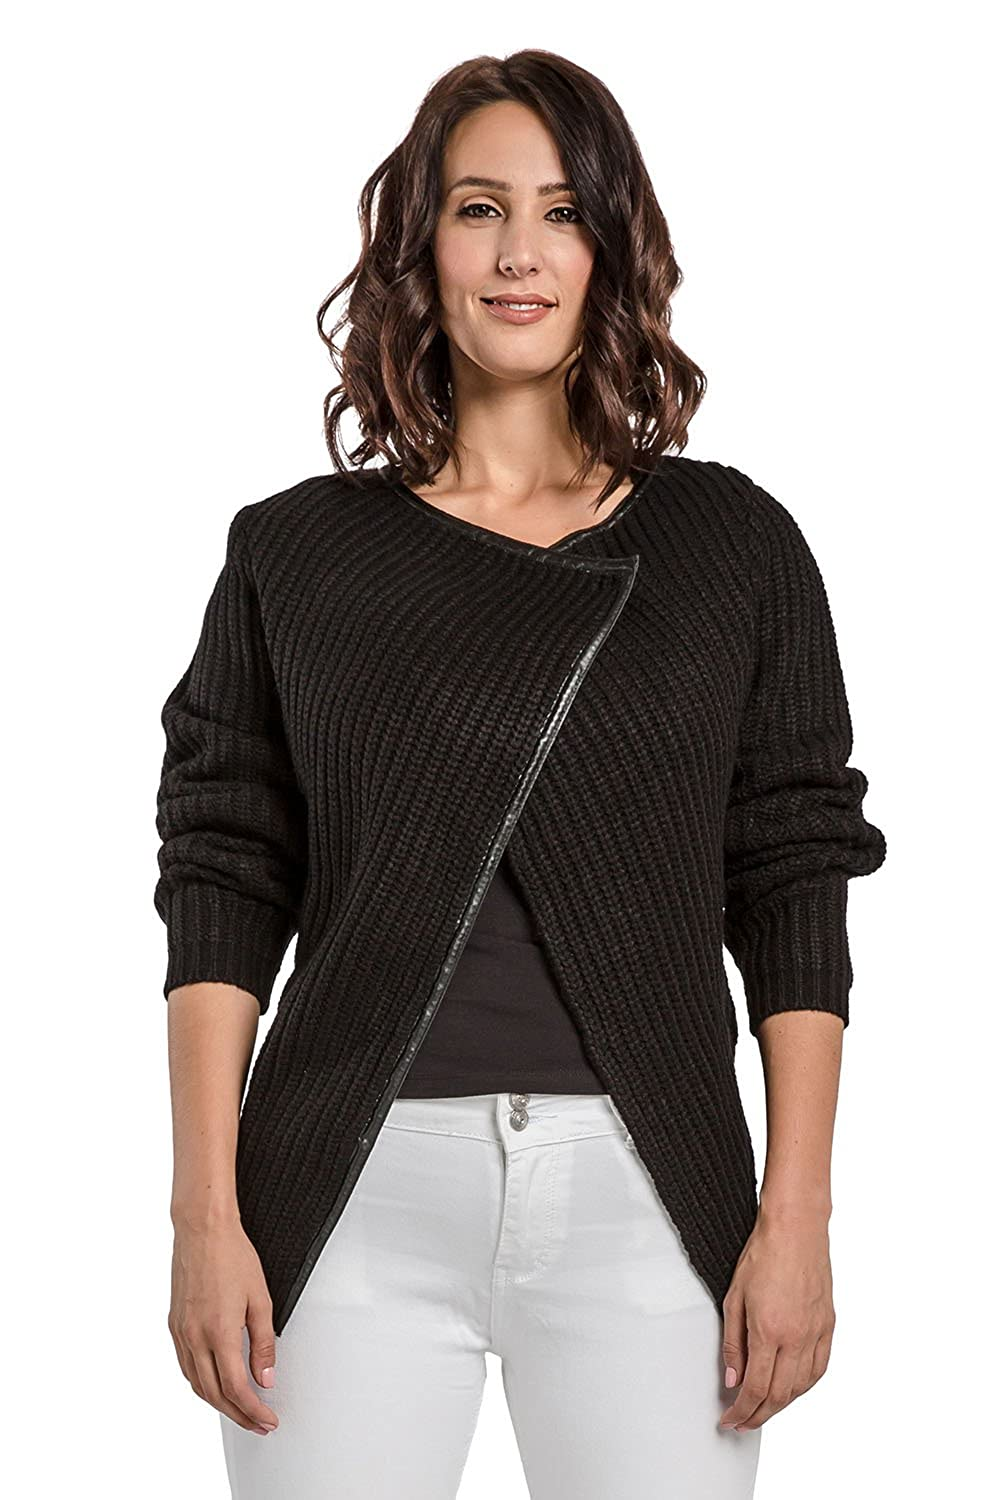 f7283f2f18 Miss Halladay Women's Cotton Cable Knit Sweater Jacket Wrap Front ...